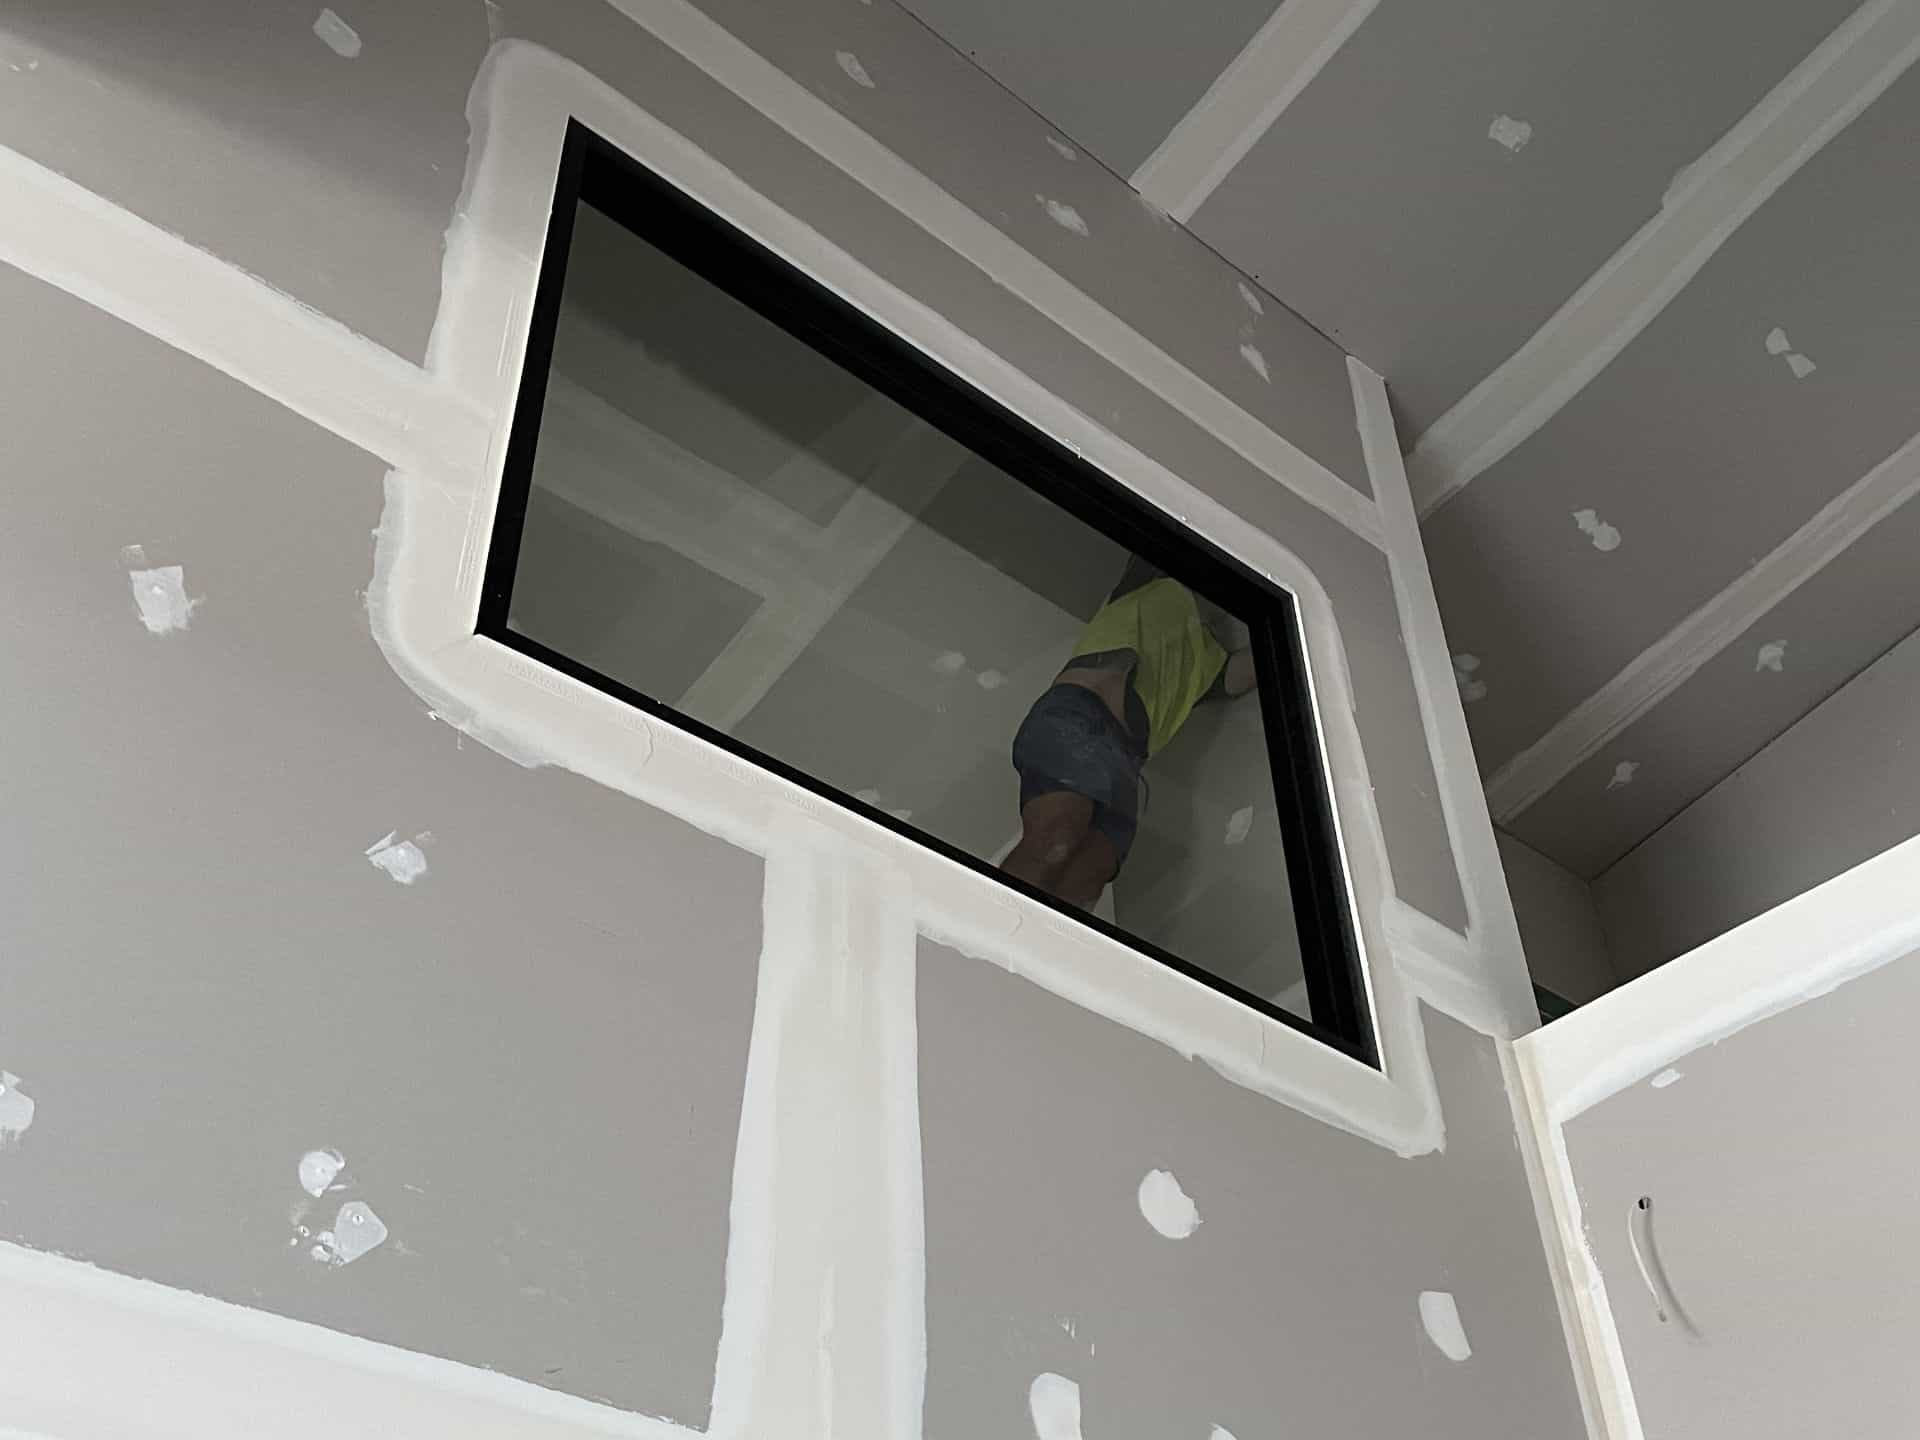 Classic Ceilings - All plasterboard